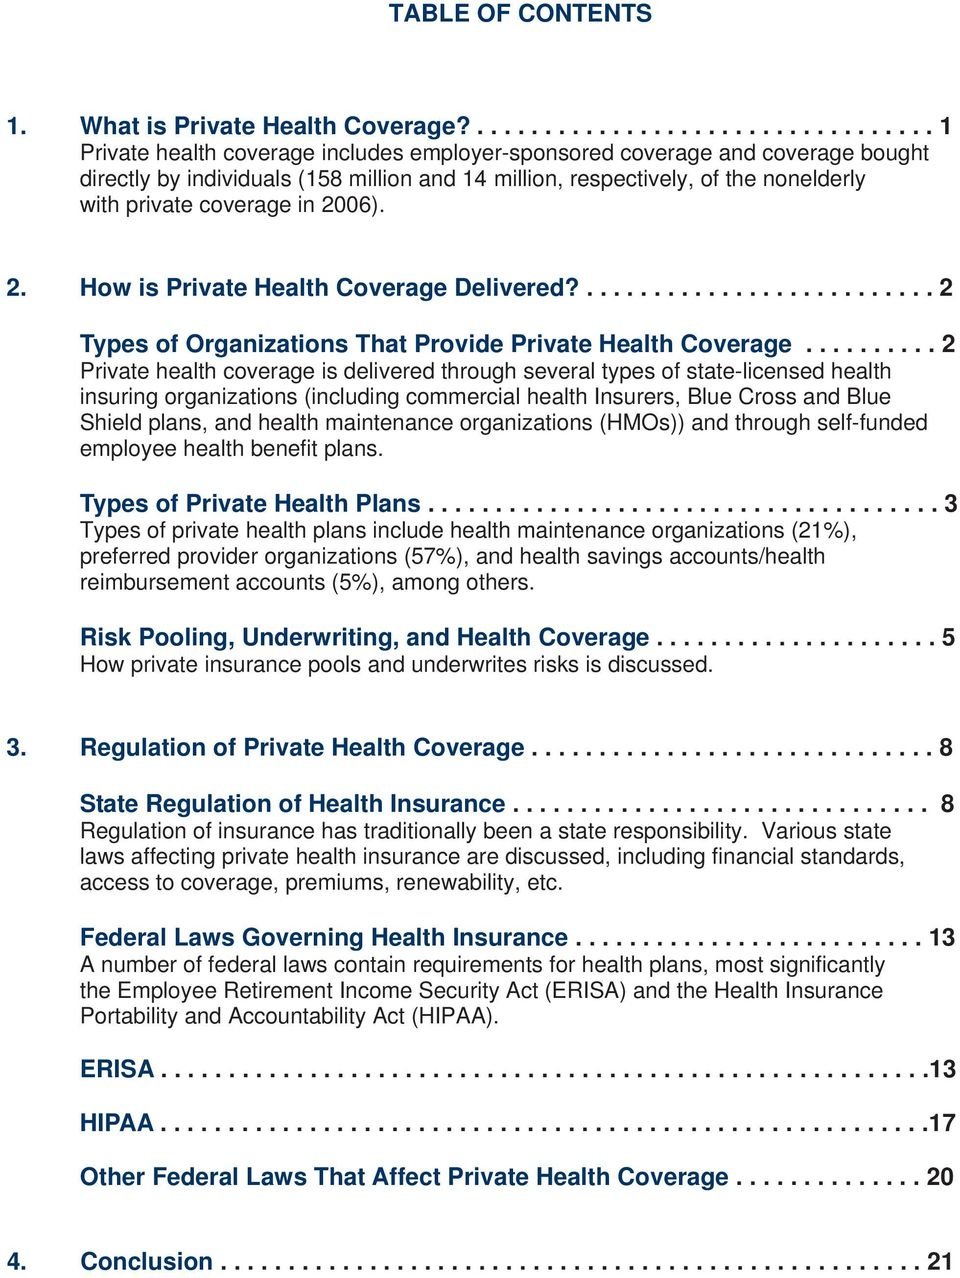 2. How is Private Health Coverage Delivered?.......................... 2 Types of Organizations That Provide Private Health Coverage.